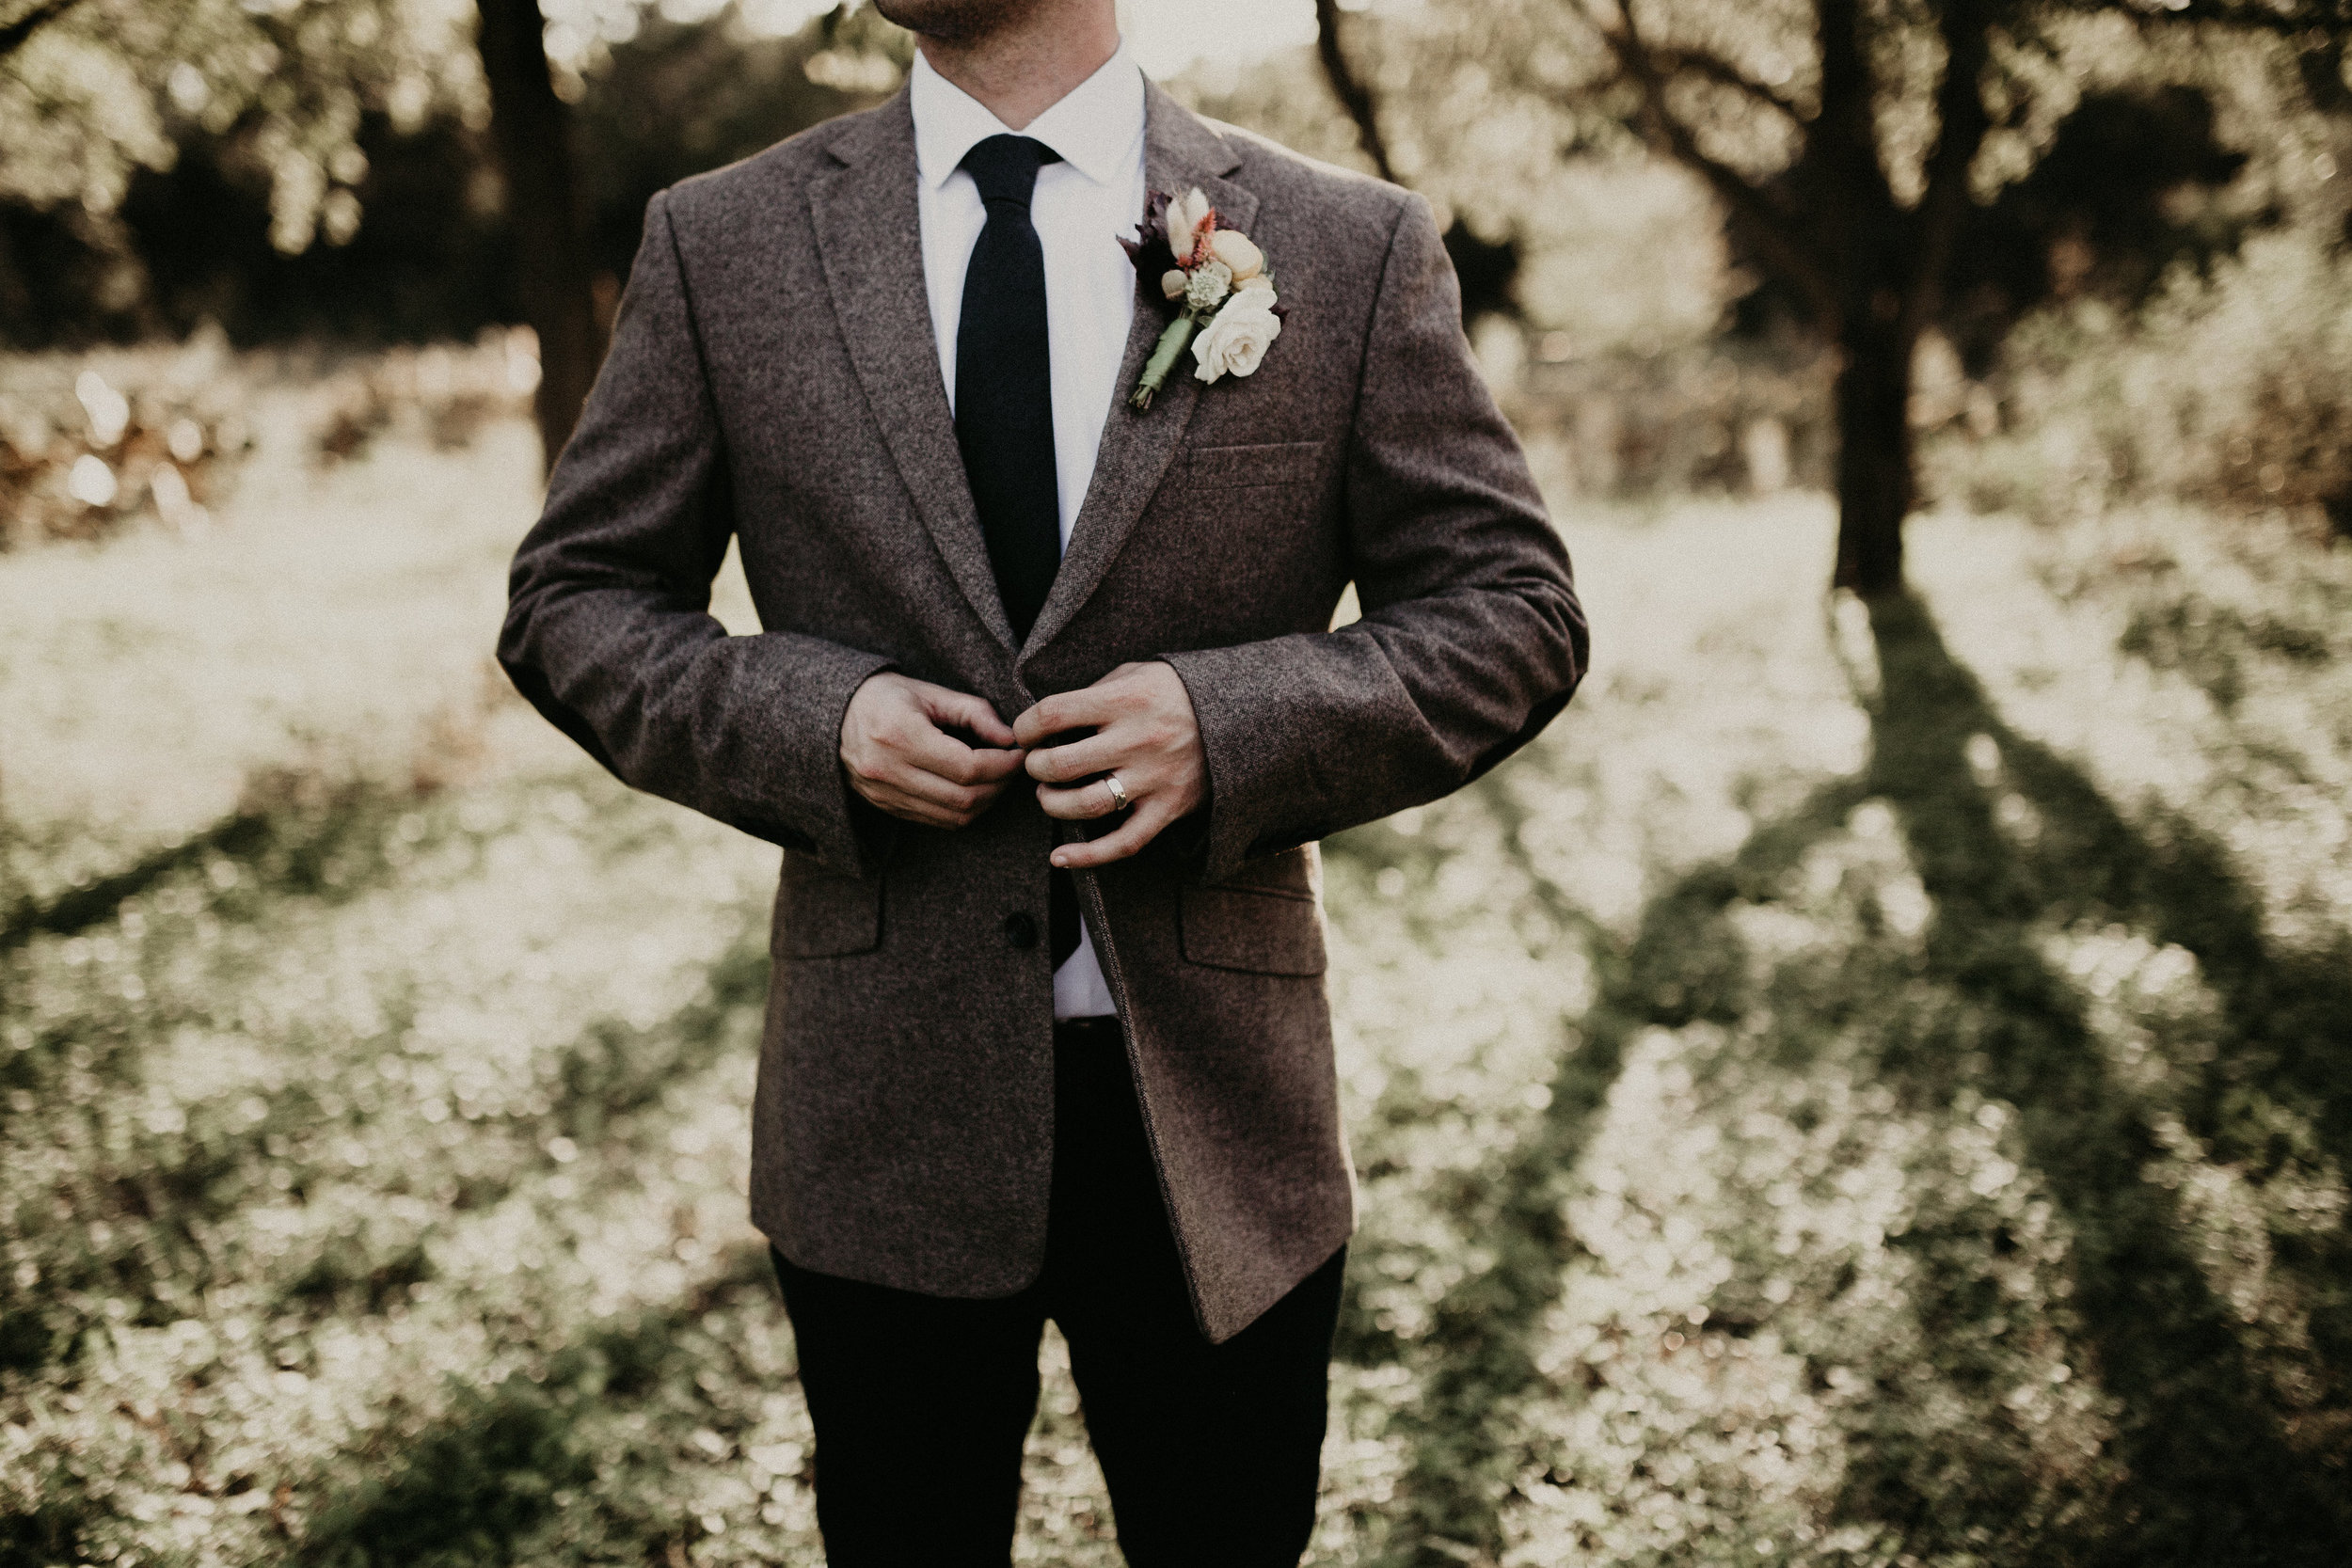 Trek+Bloom-FallInspirationElopement10092017-13.jpg